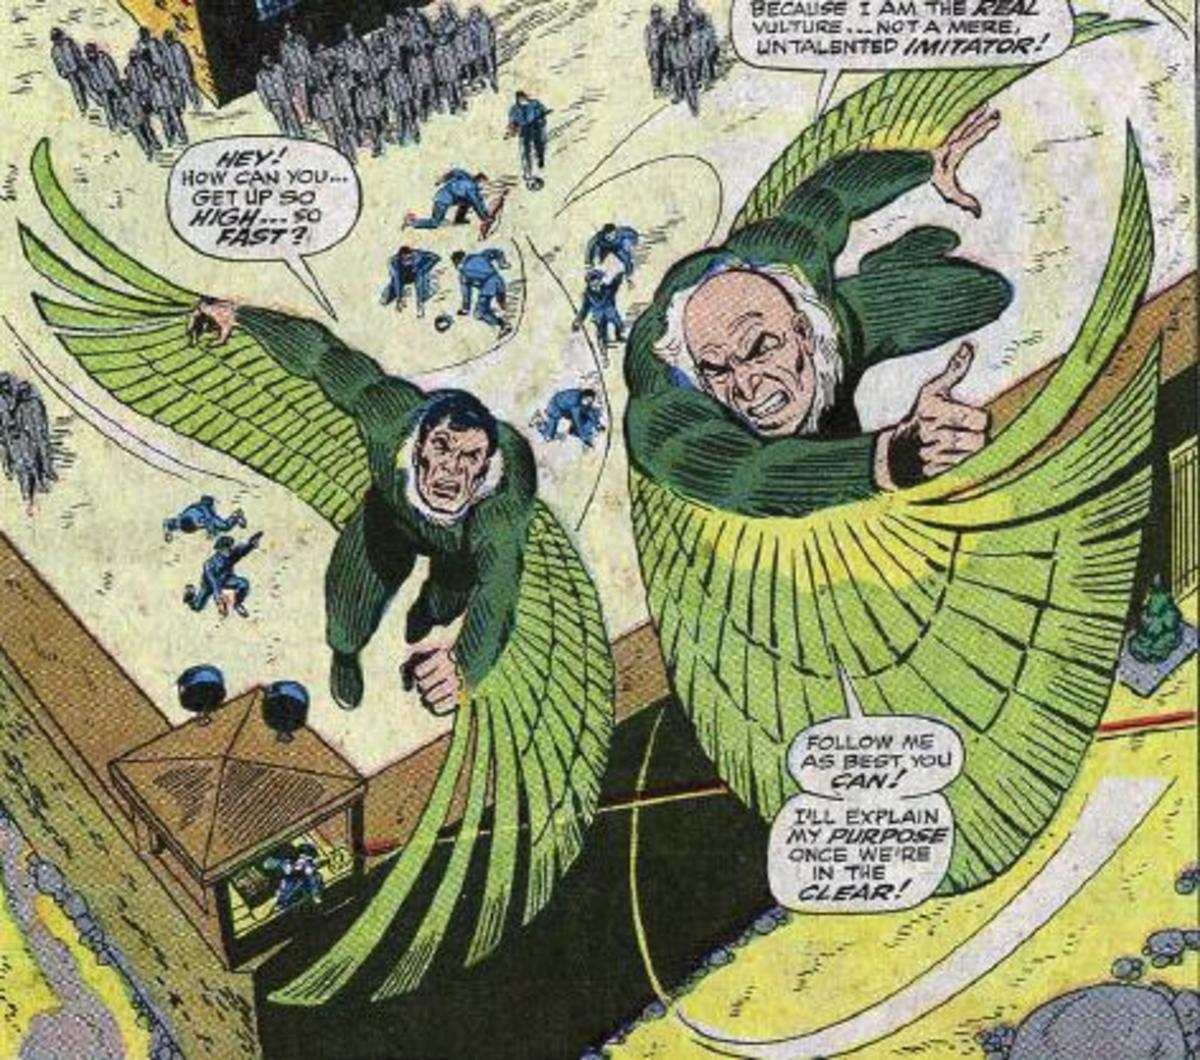 The original Vulture followed by his second stringer, Blackie Drago